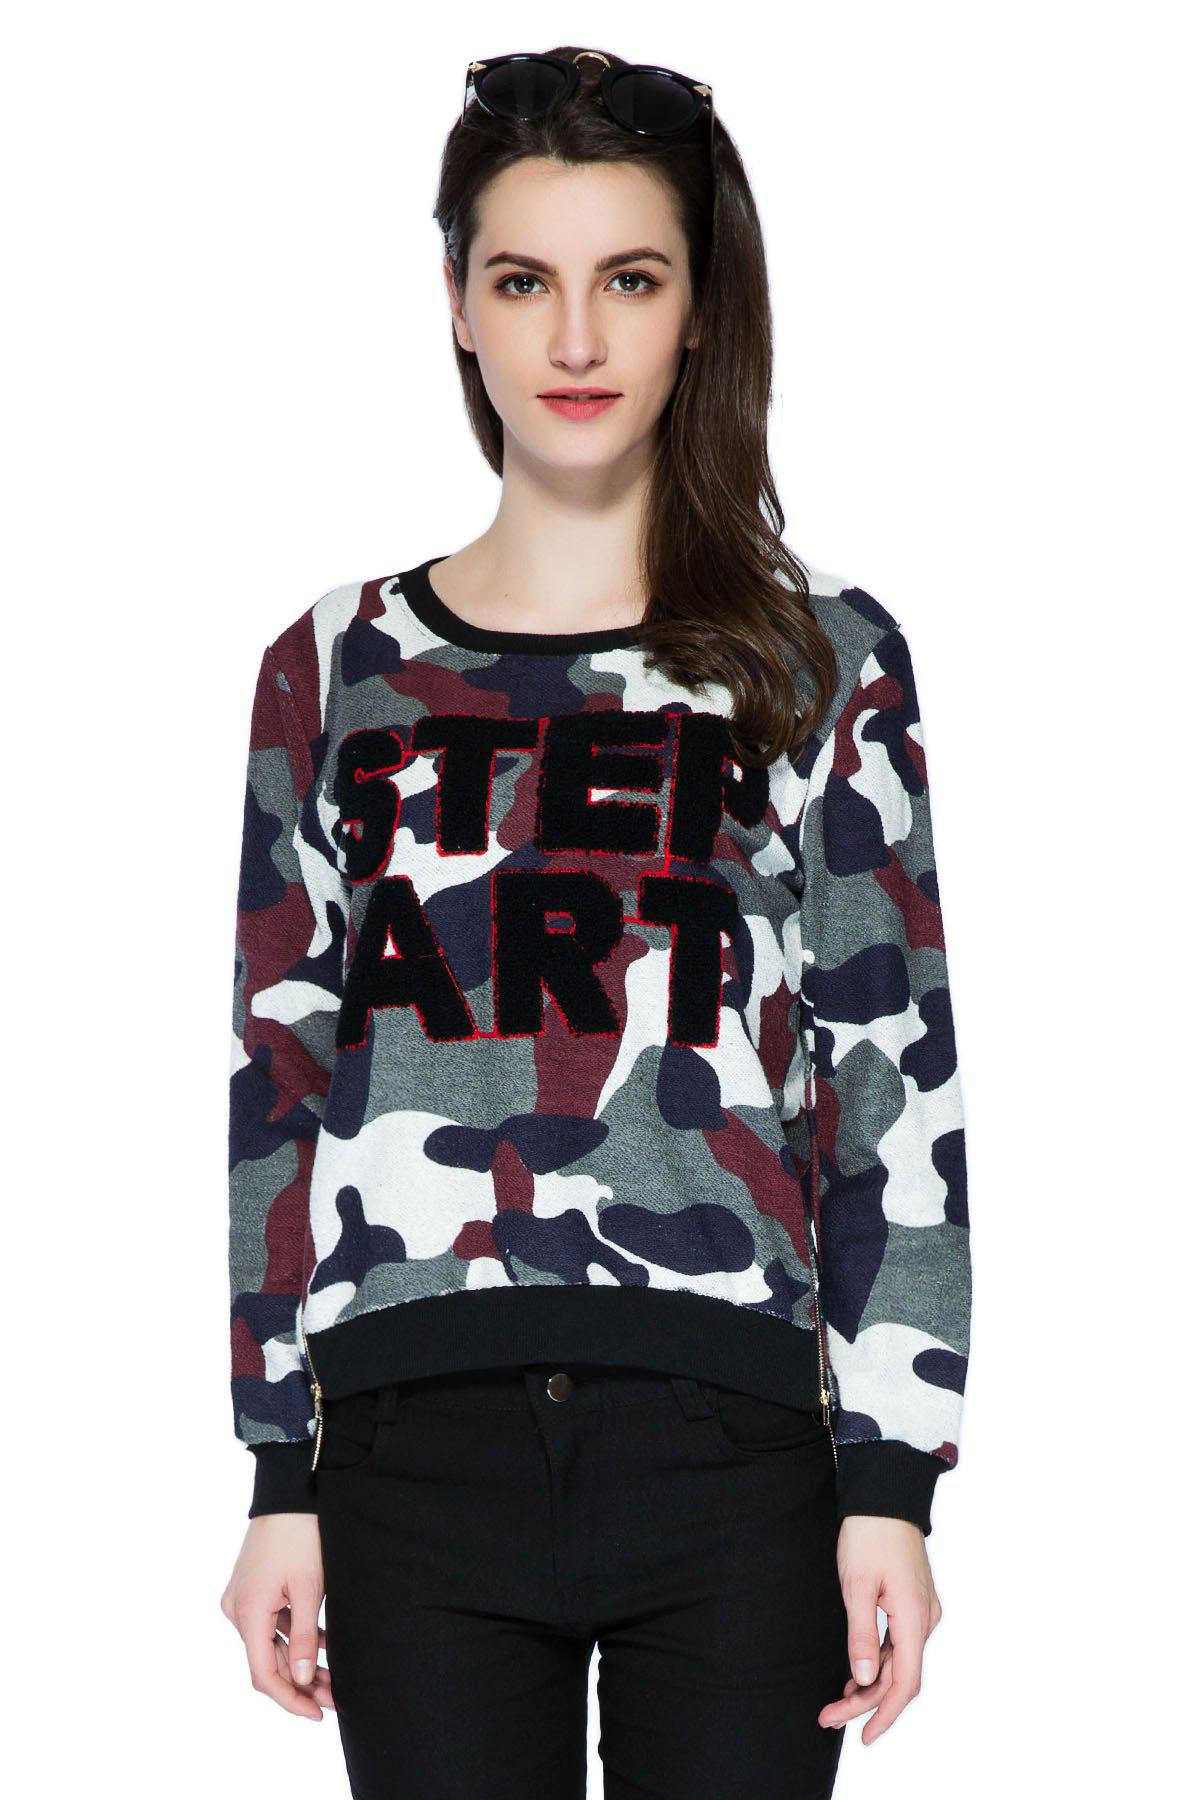 Latest Stylish Scoop Collar Long Sleeve Letter and Camouflage Pattern Women's Sweatshirt